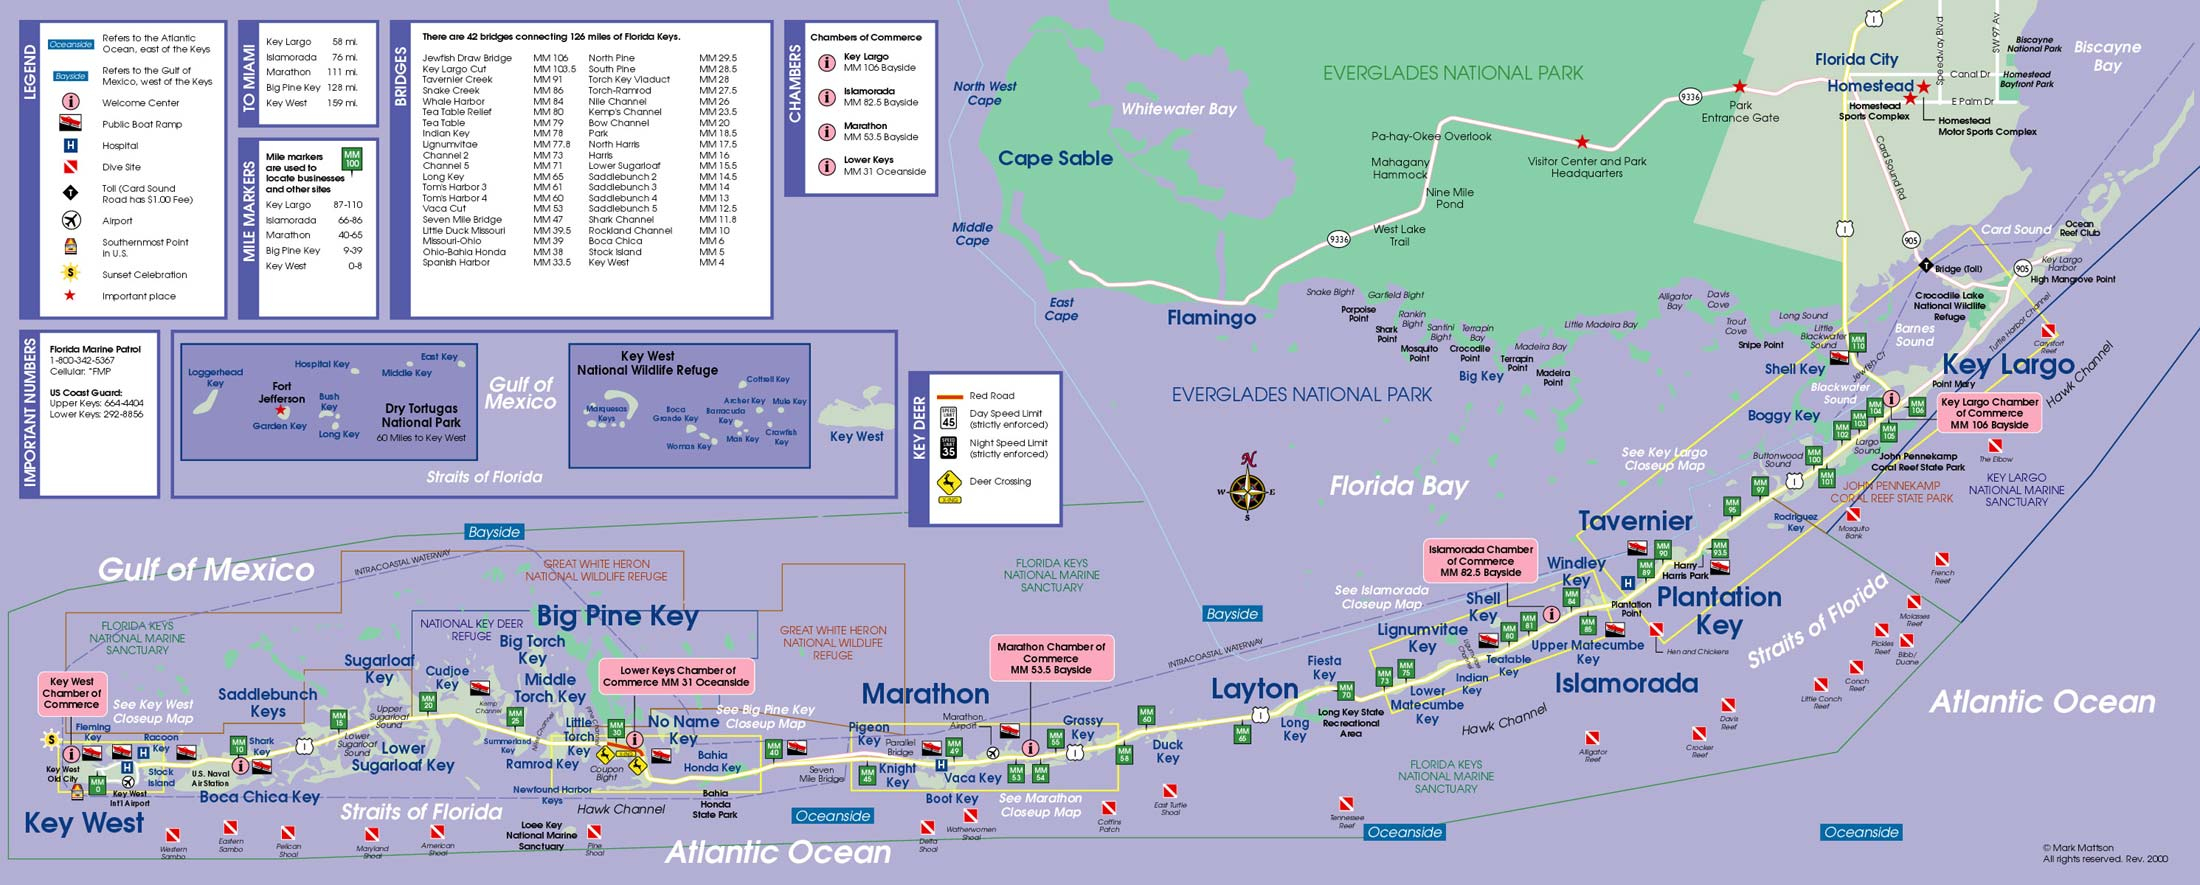 Florida Keys Map - Florida Keys Florida Usa • Mappery - Detailed Map Of Florida Keys